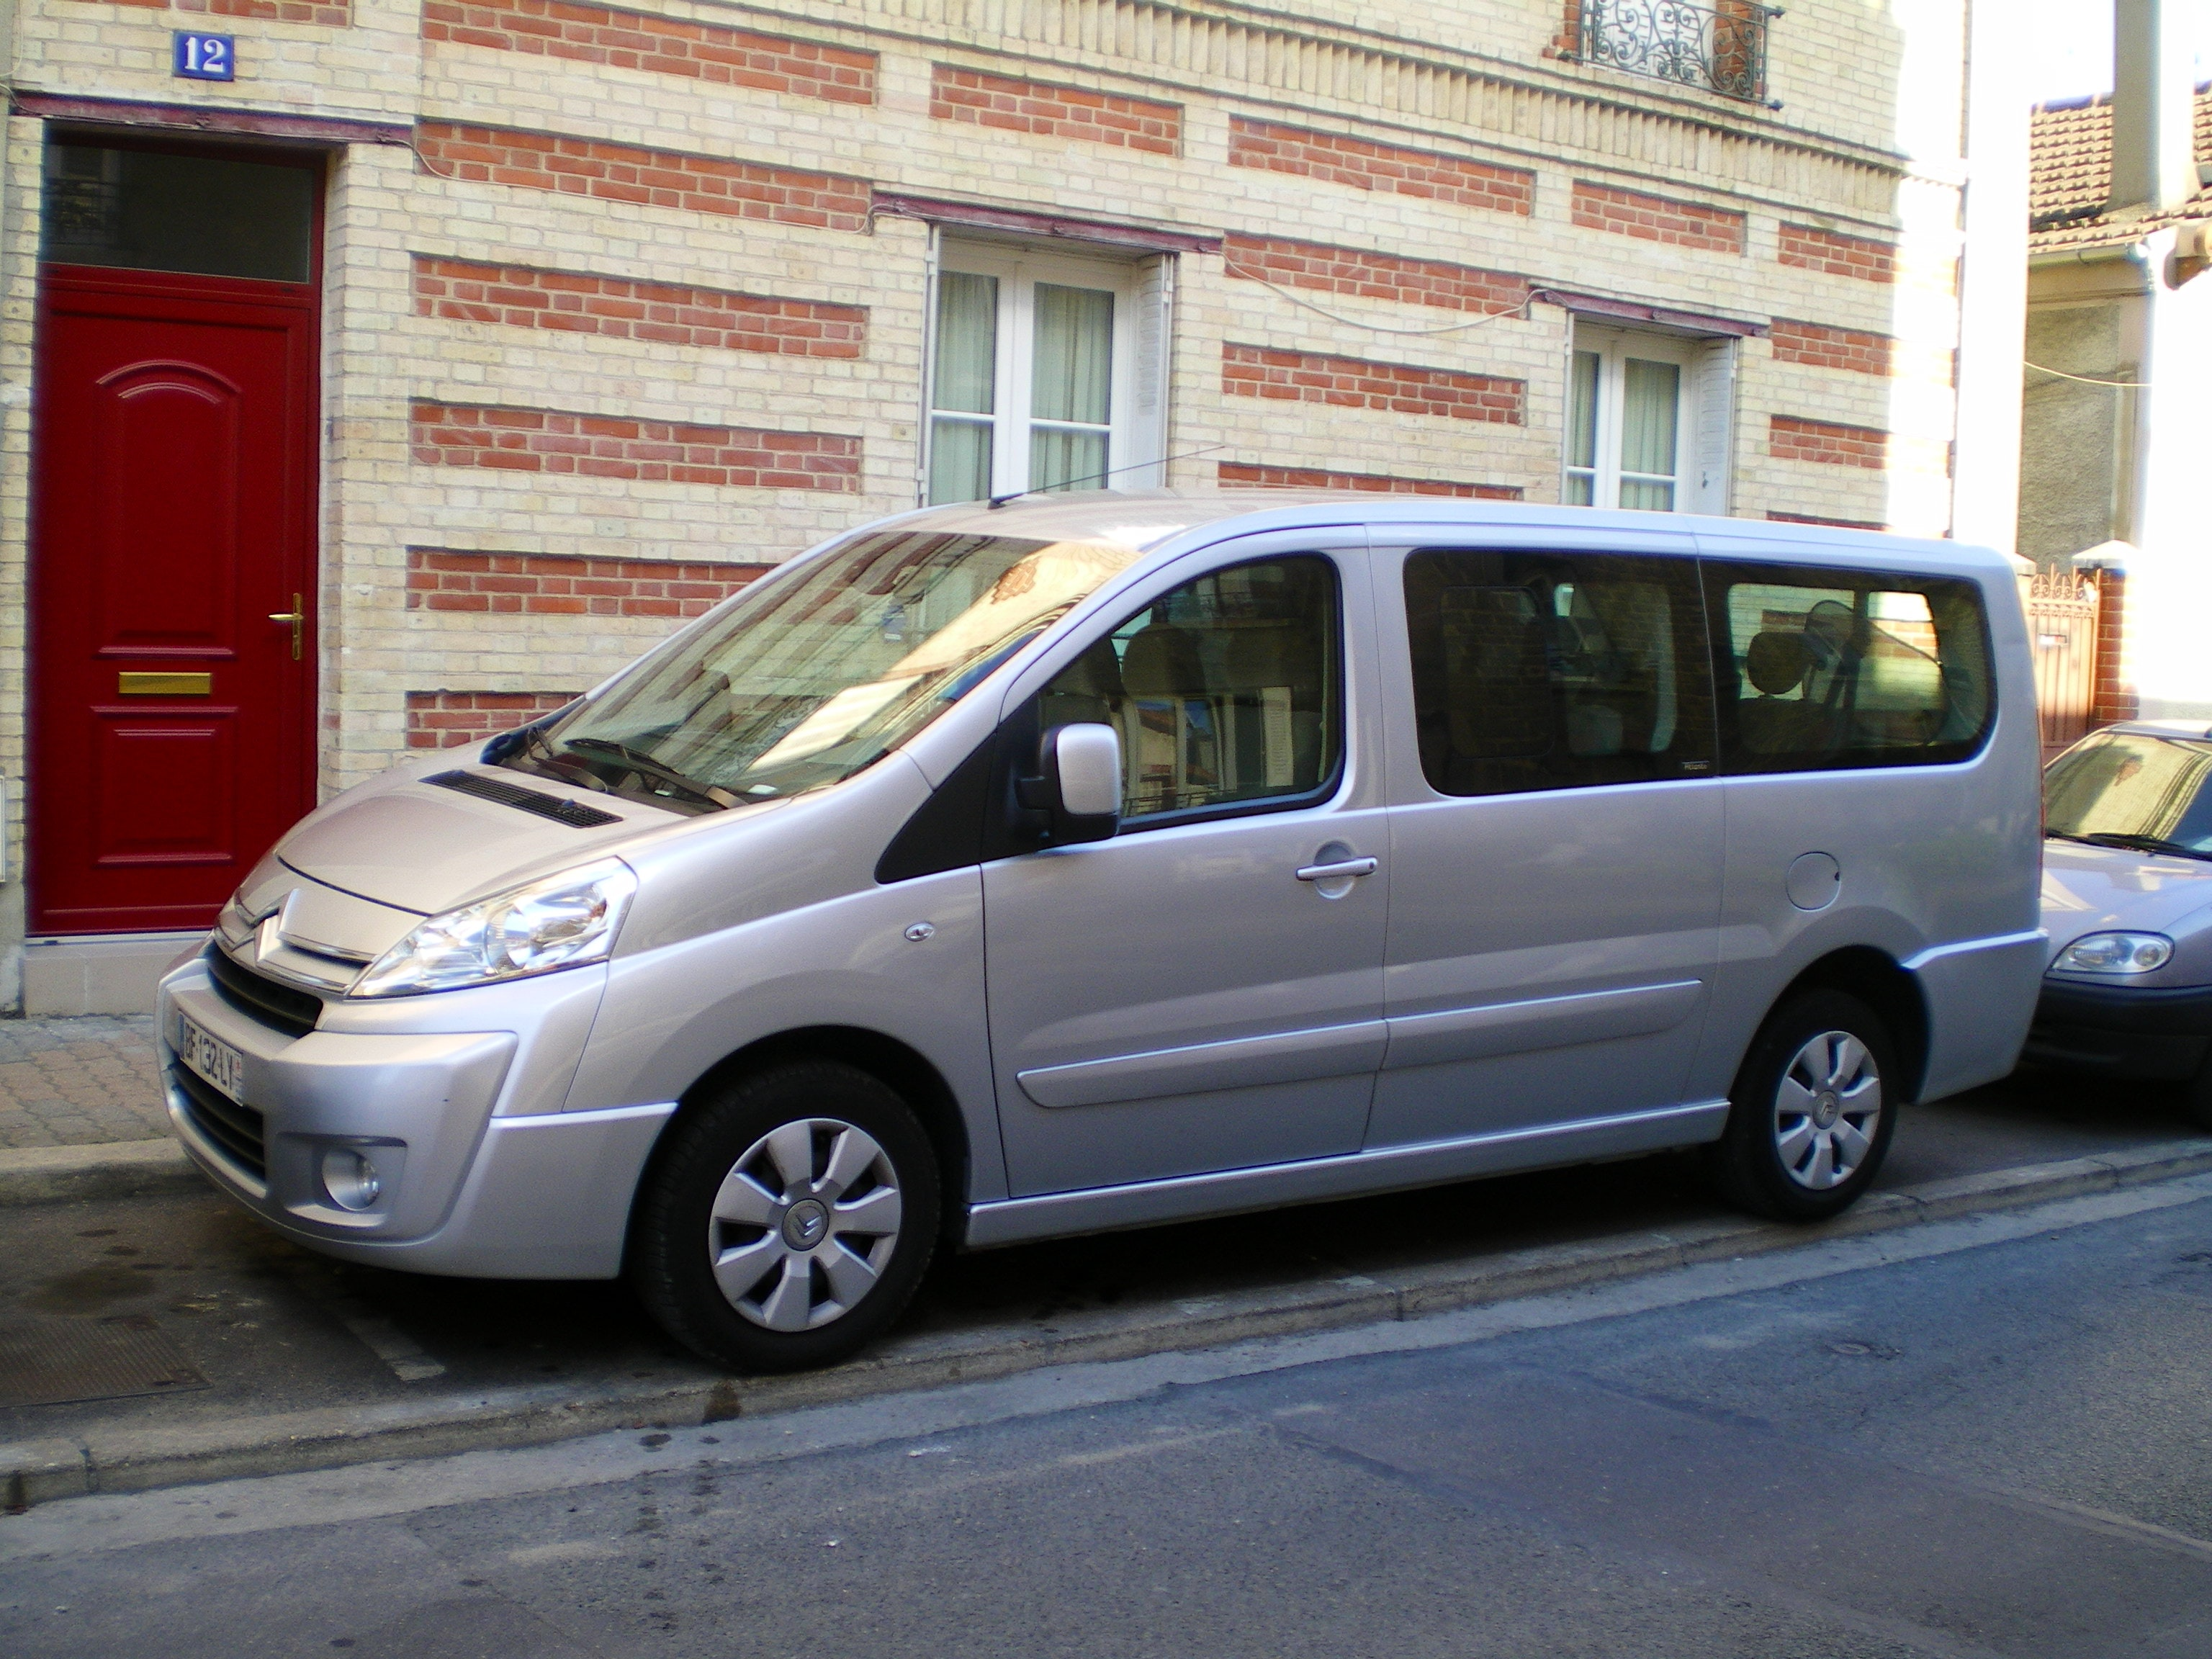 Citroën Jumpy Atlante, 2010, Diesel, 9 places et plus